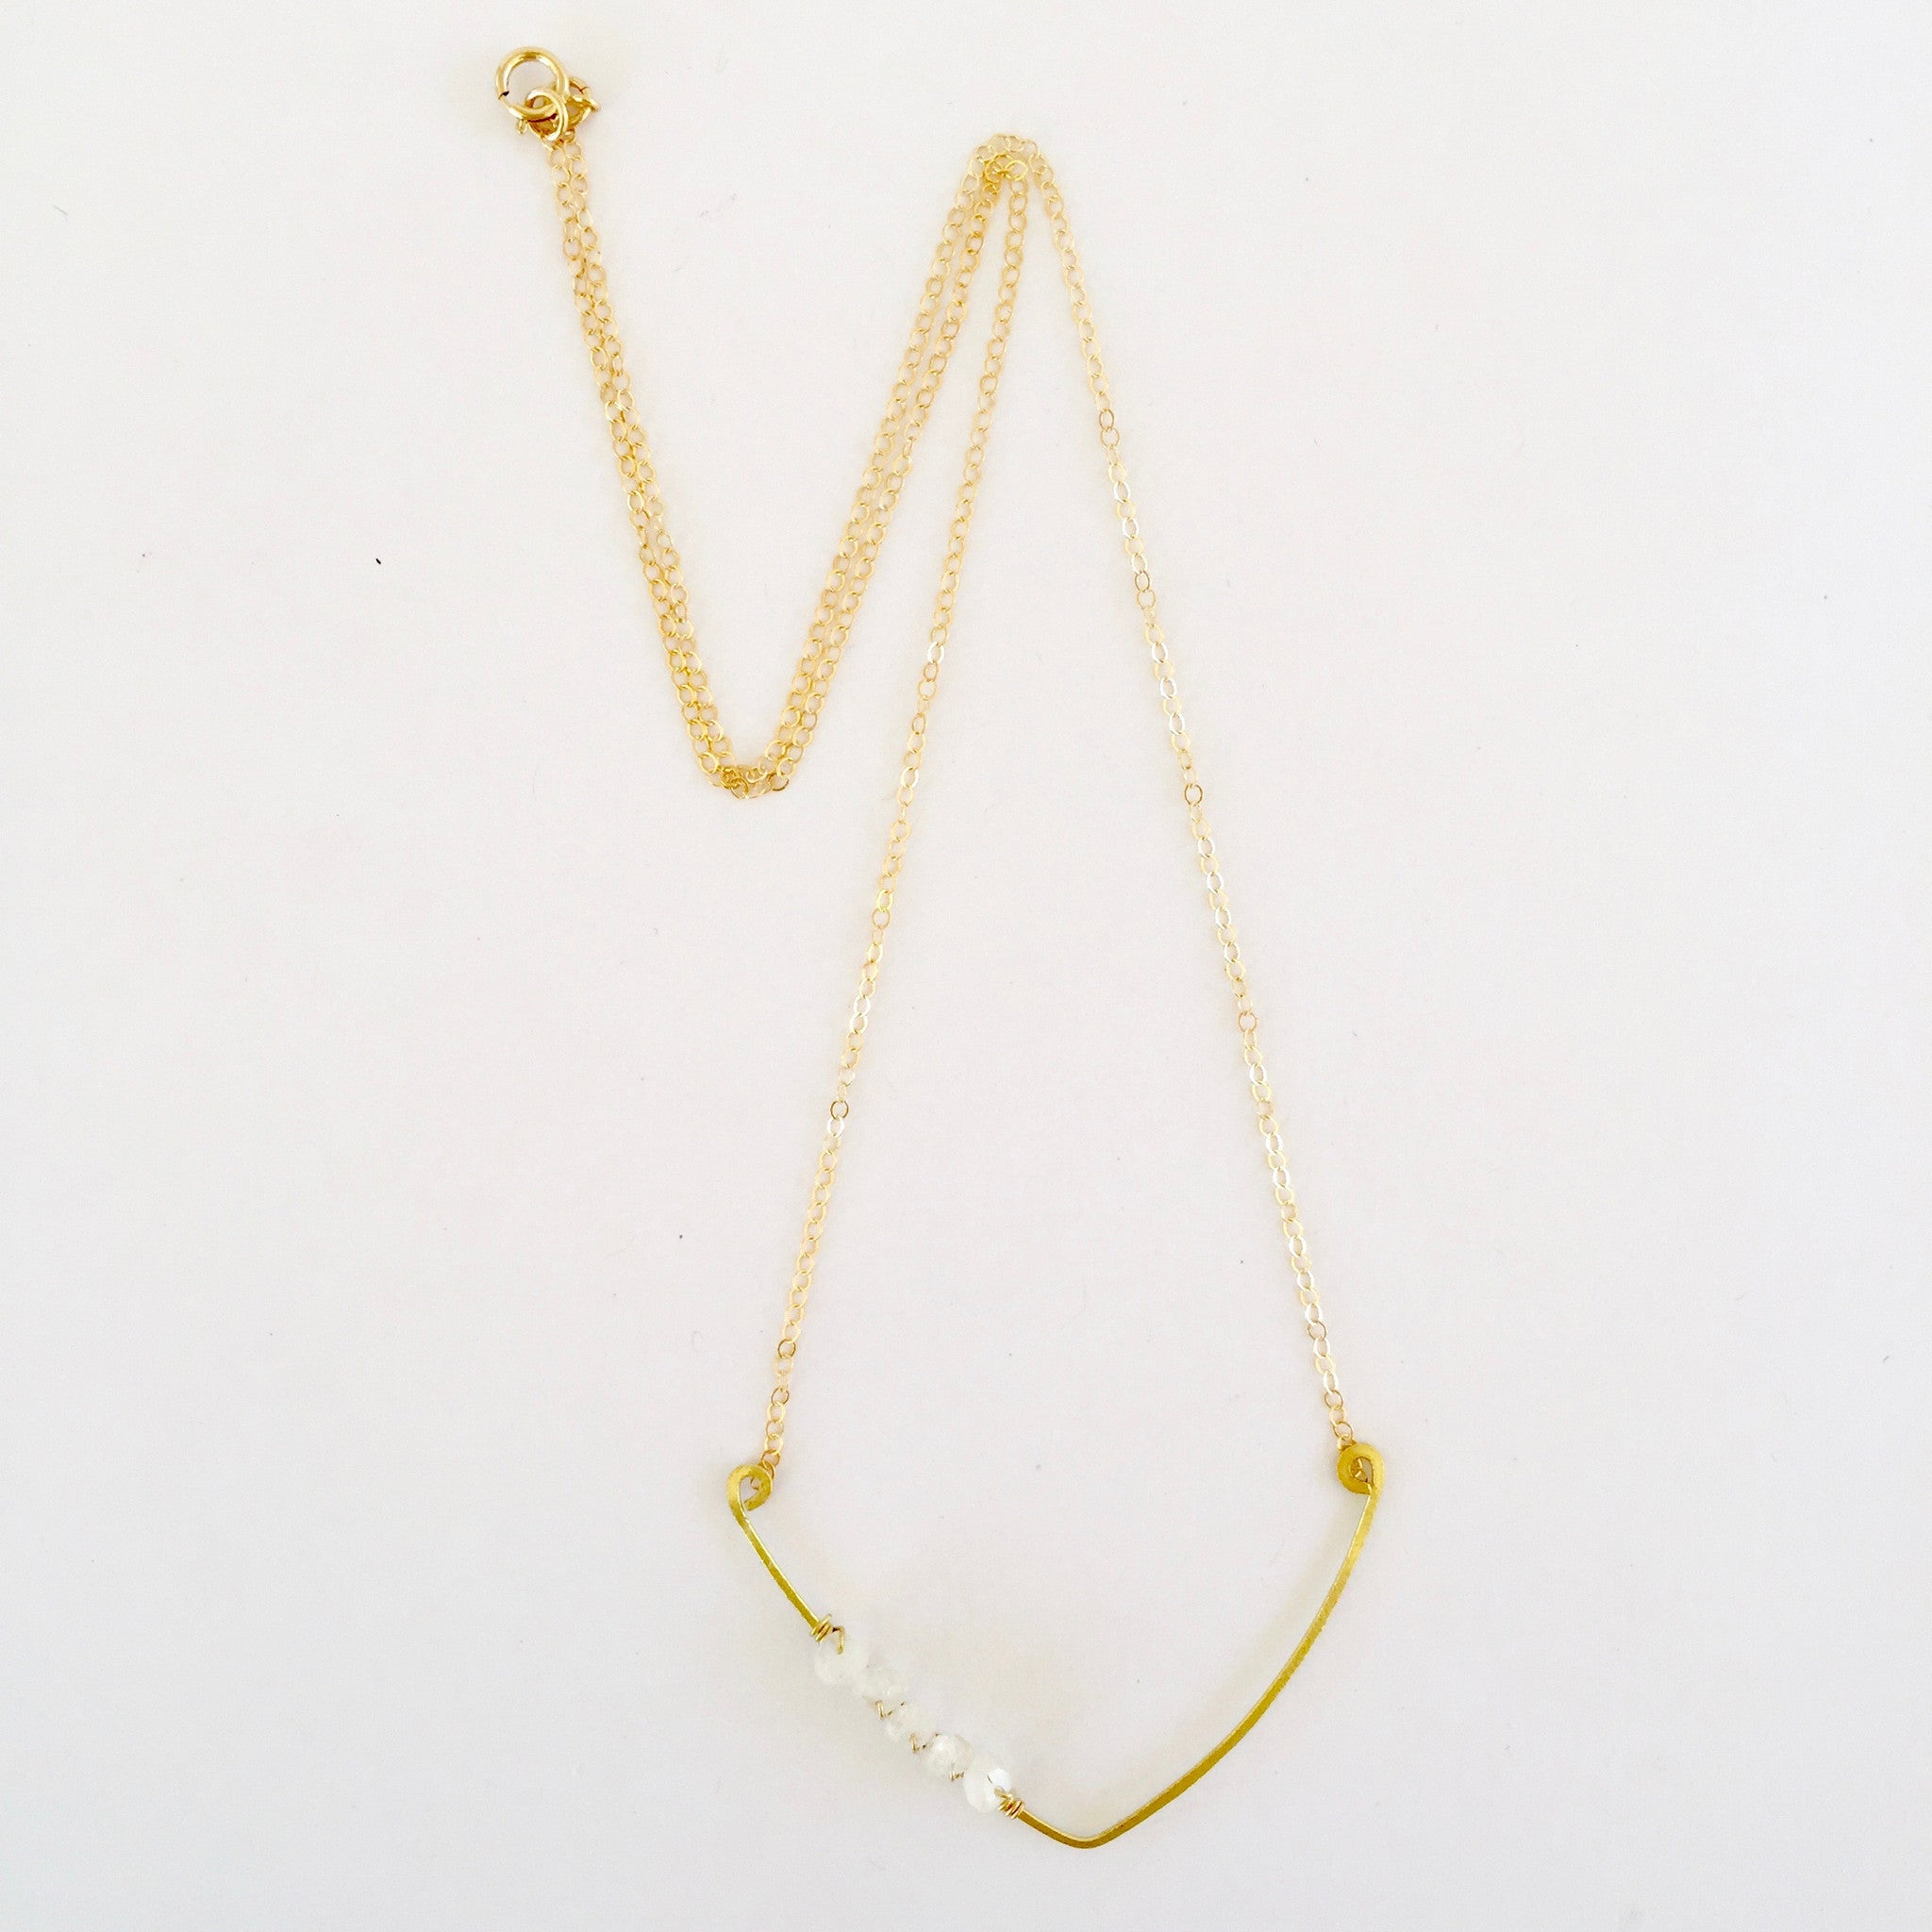 Sindy Necklace in Moonstone